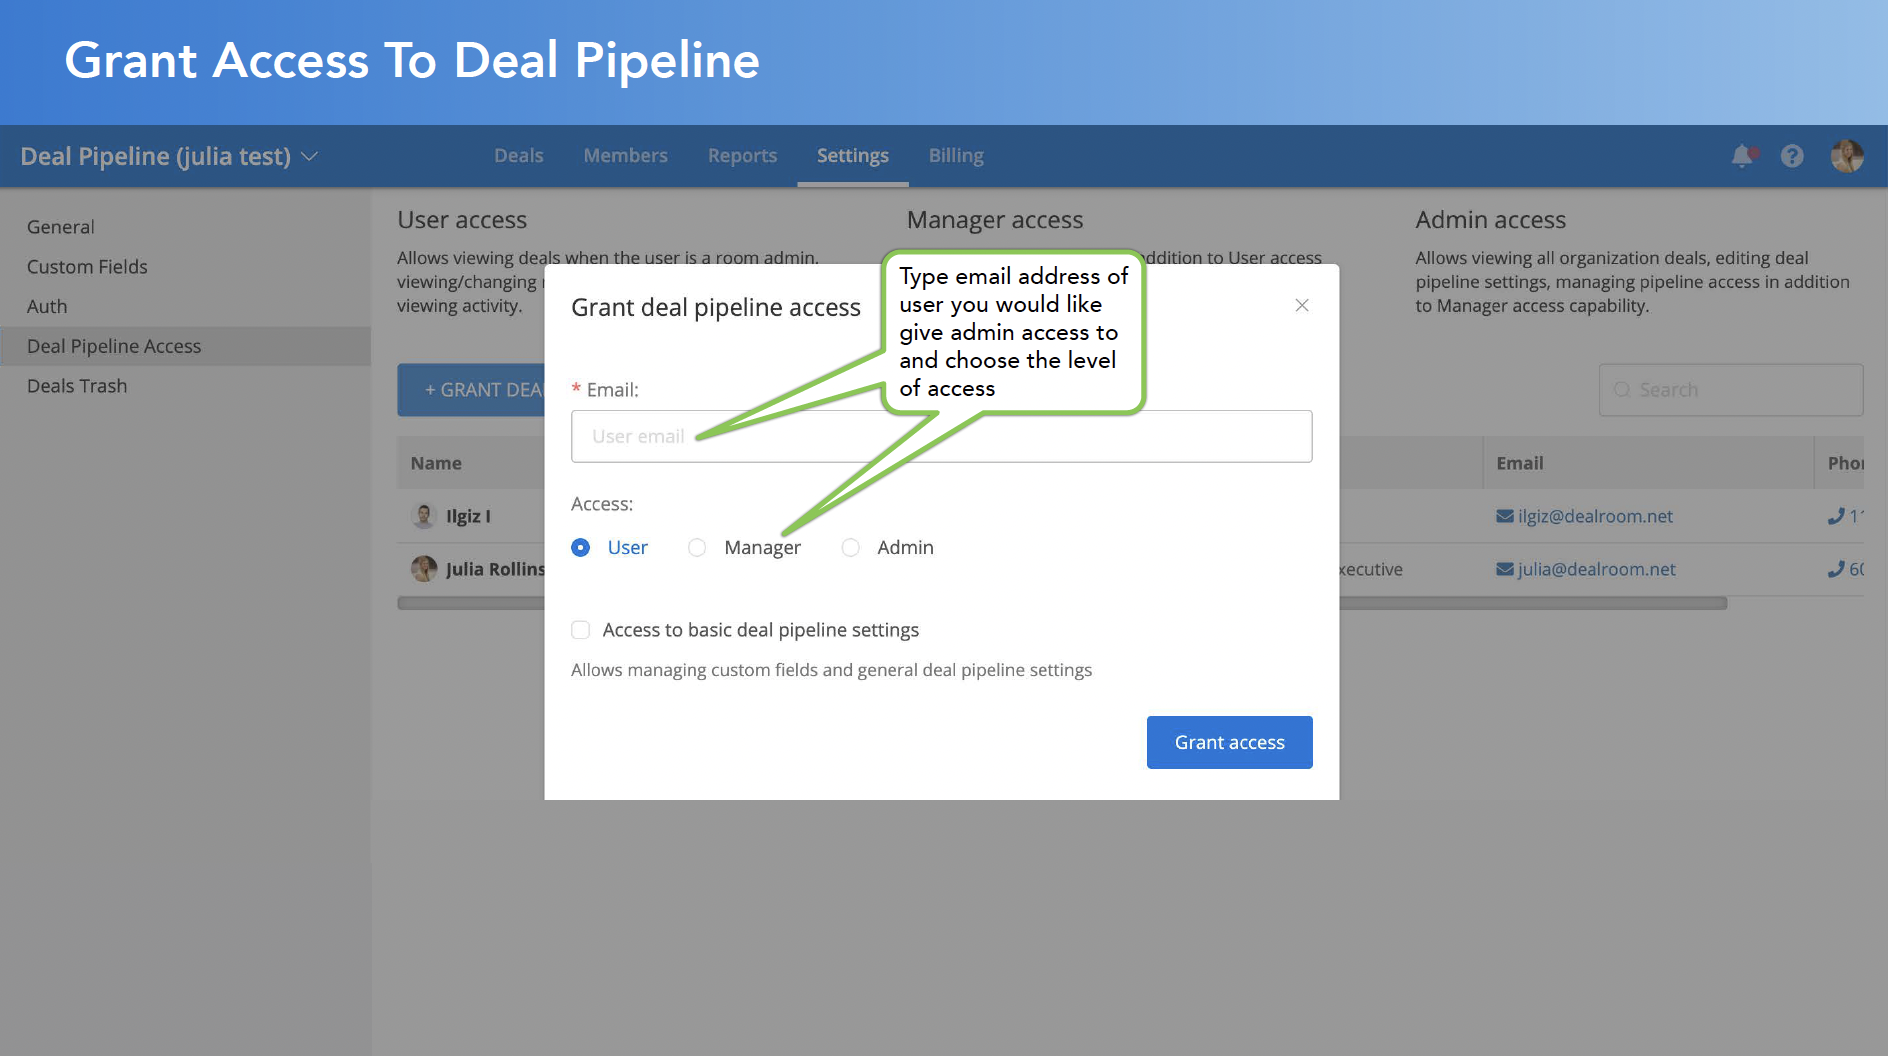 Grant Access to Deal Pipeline